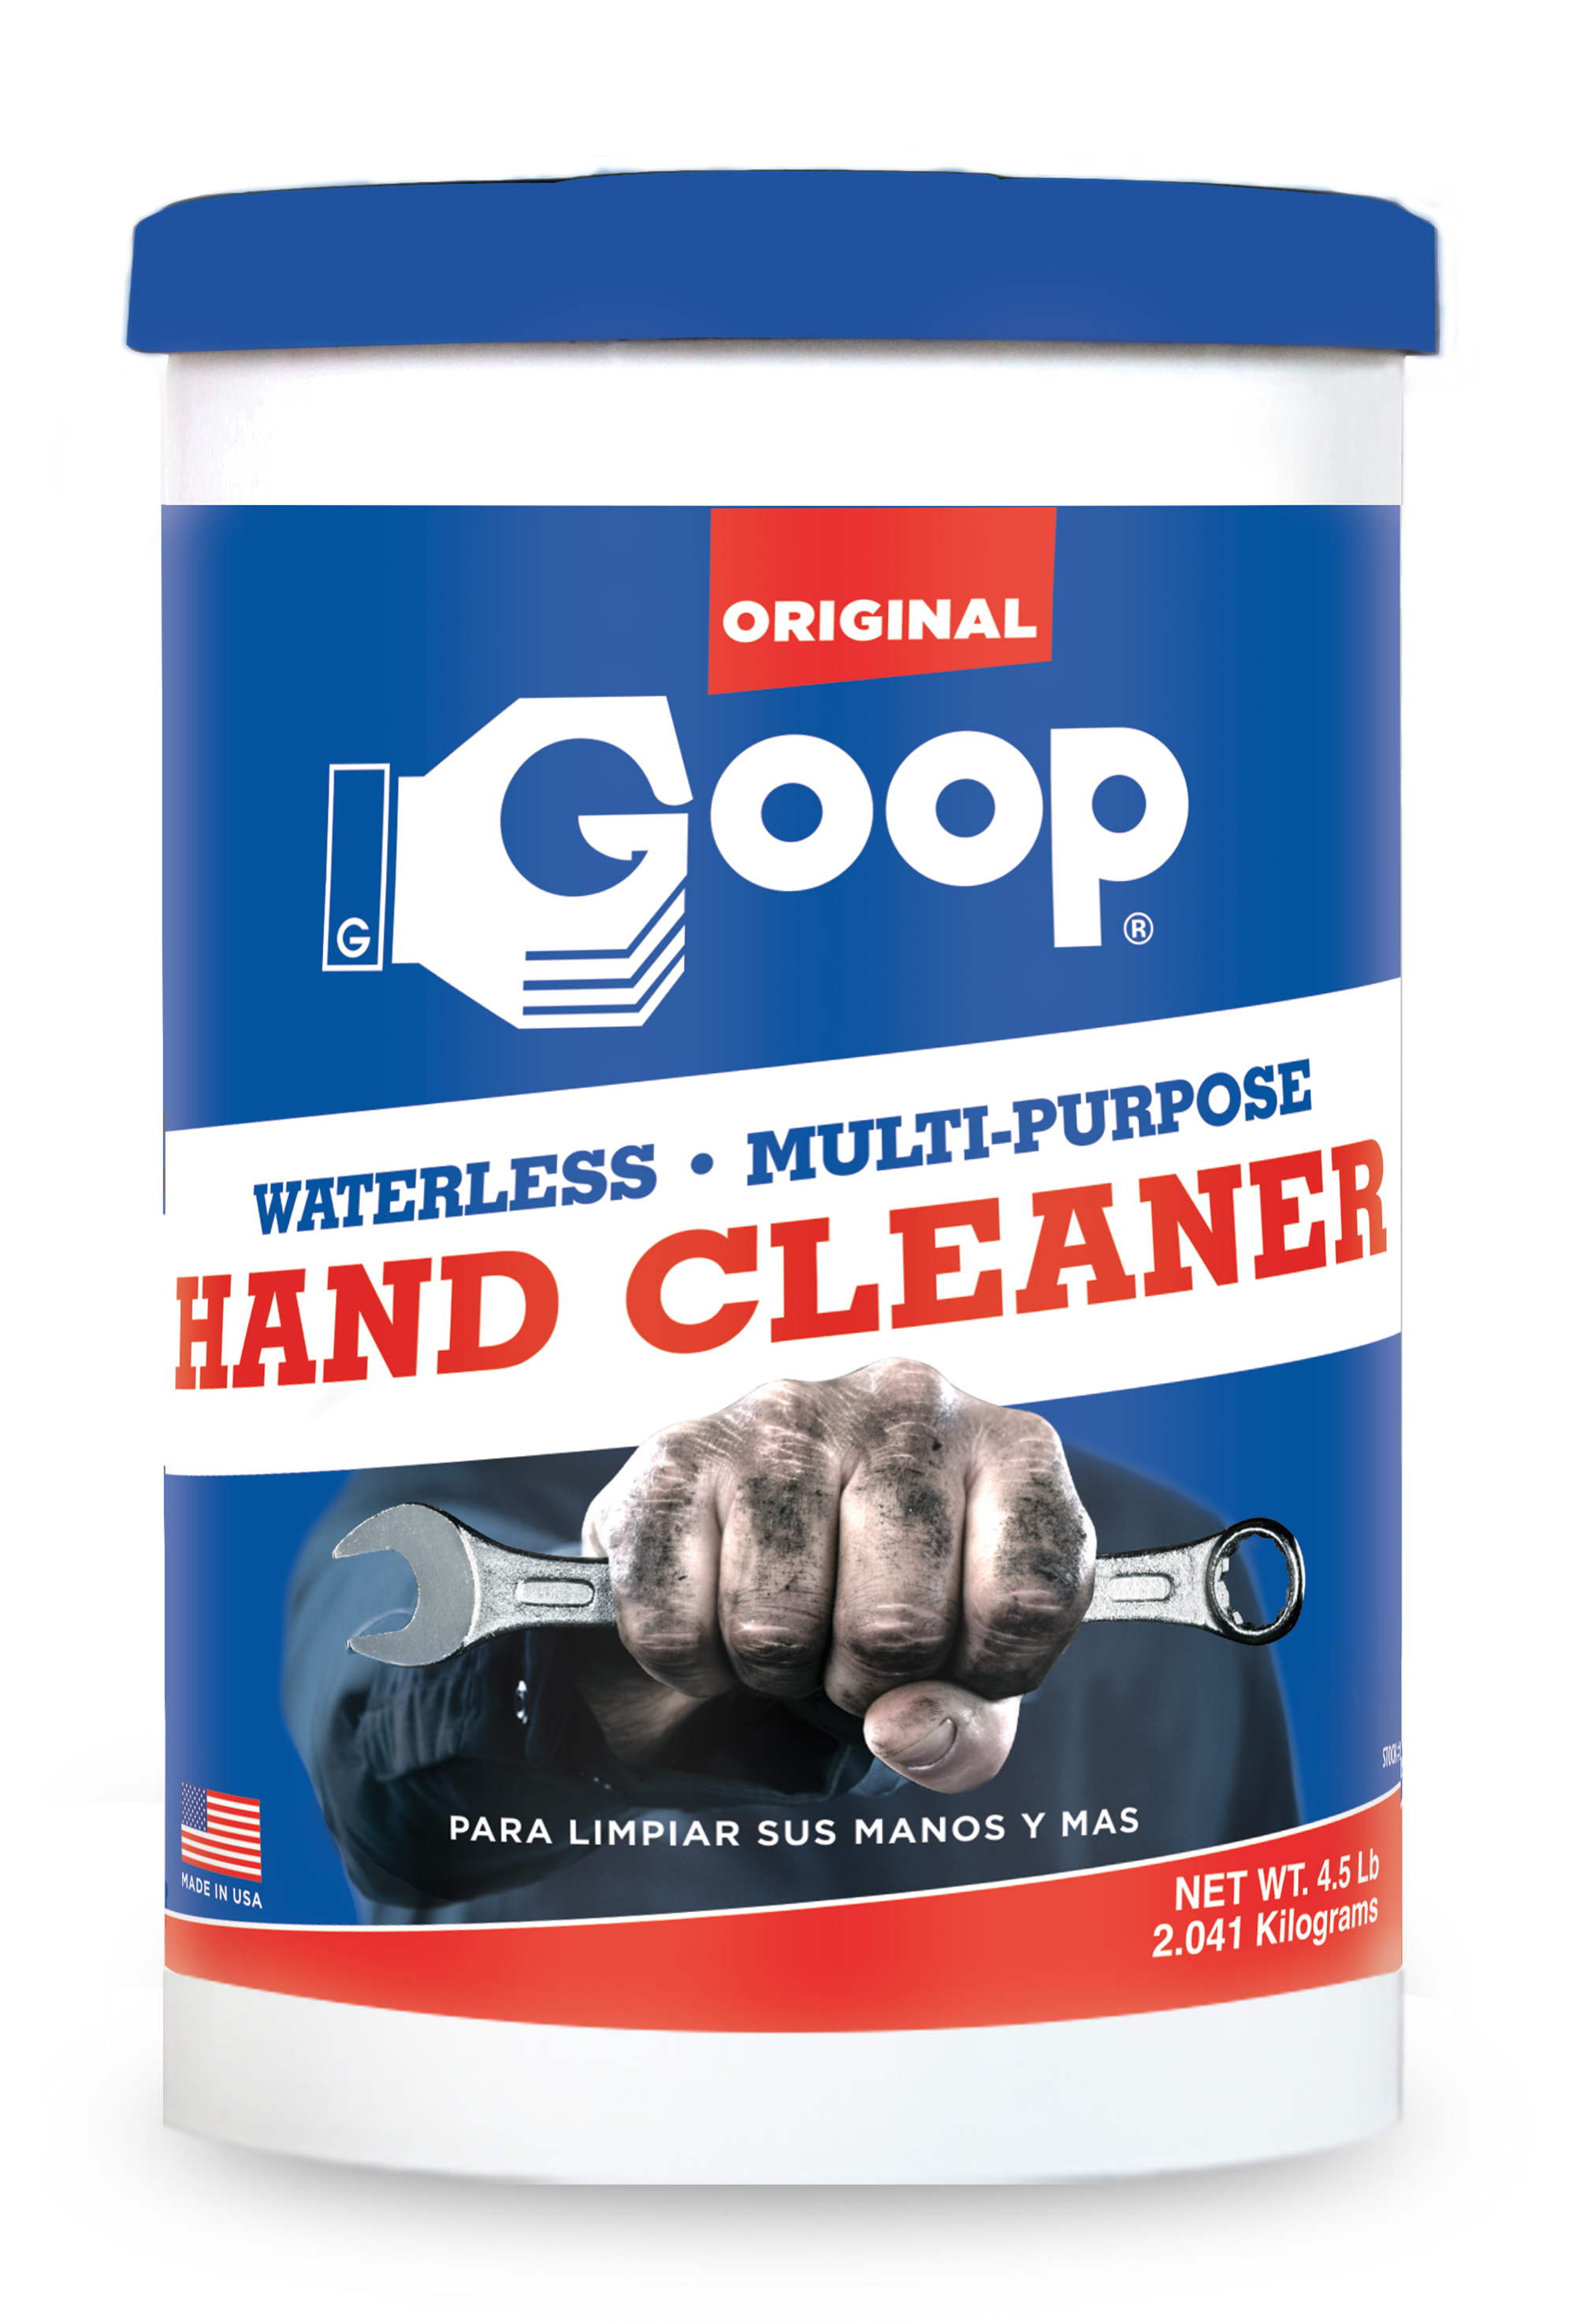 Moms-Goop-Original-64-4_5lb-Redesign.jpg